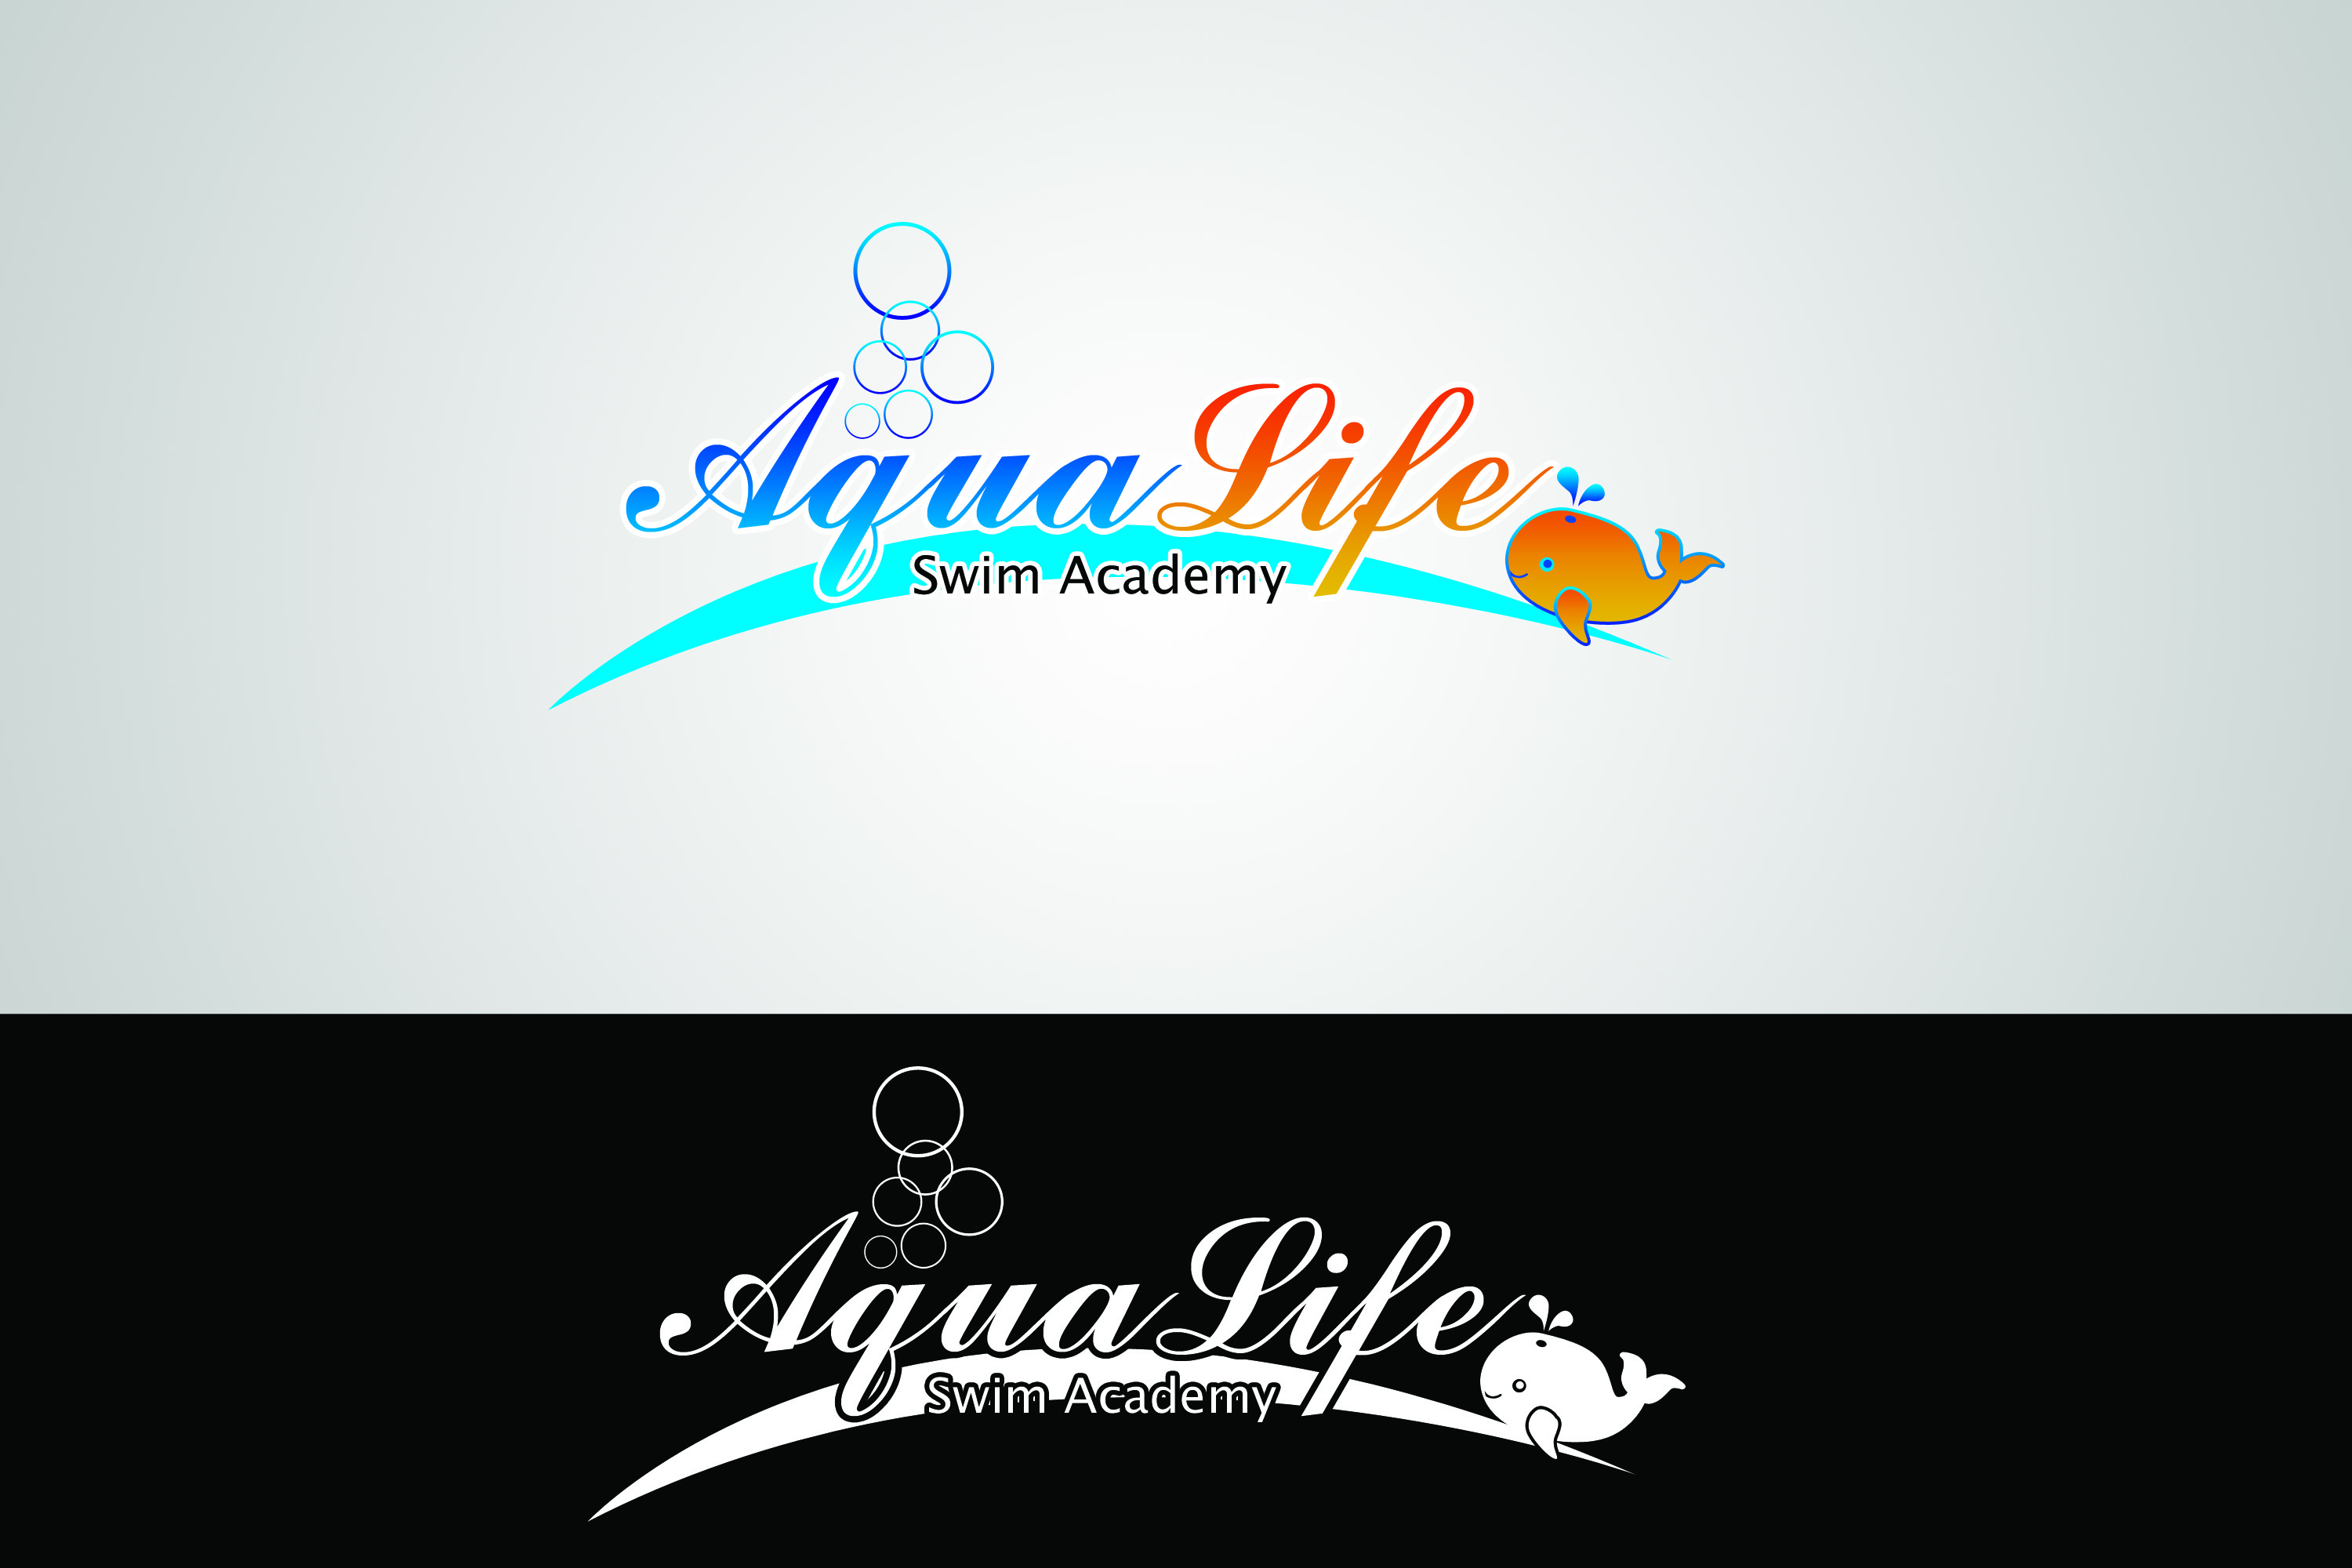 Logo Design by Private User - Entry No. 38 in the Logo Design Contest Artistic Logo Design Wanted for The Aqua Life Swim Academy.